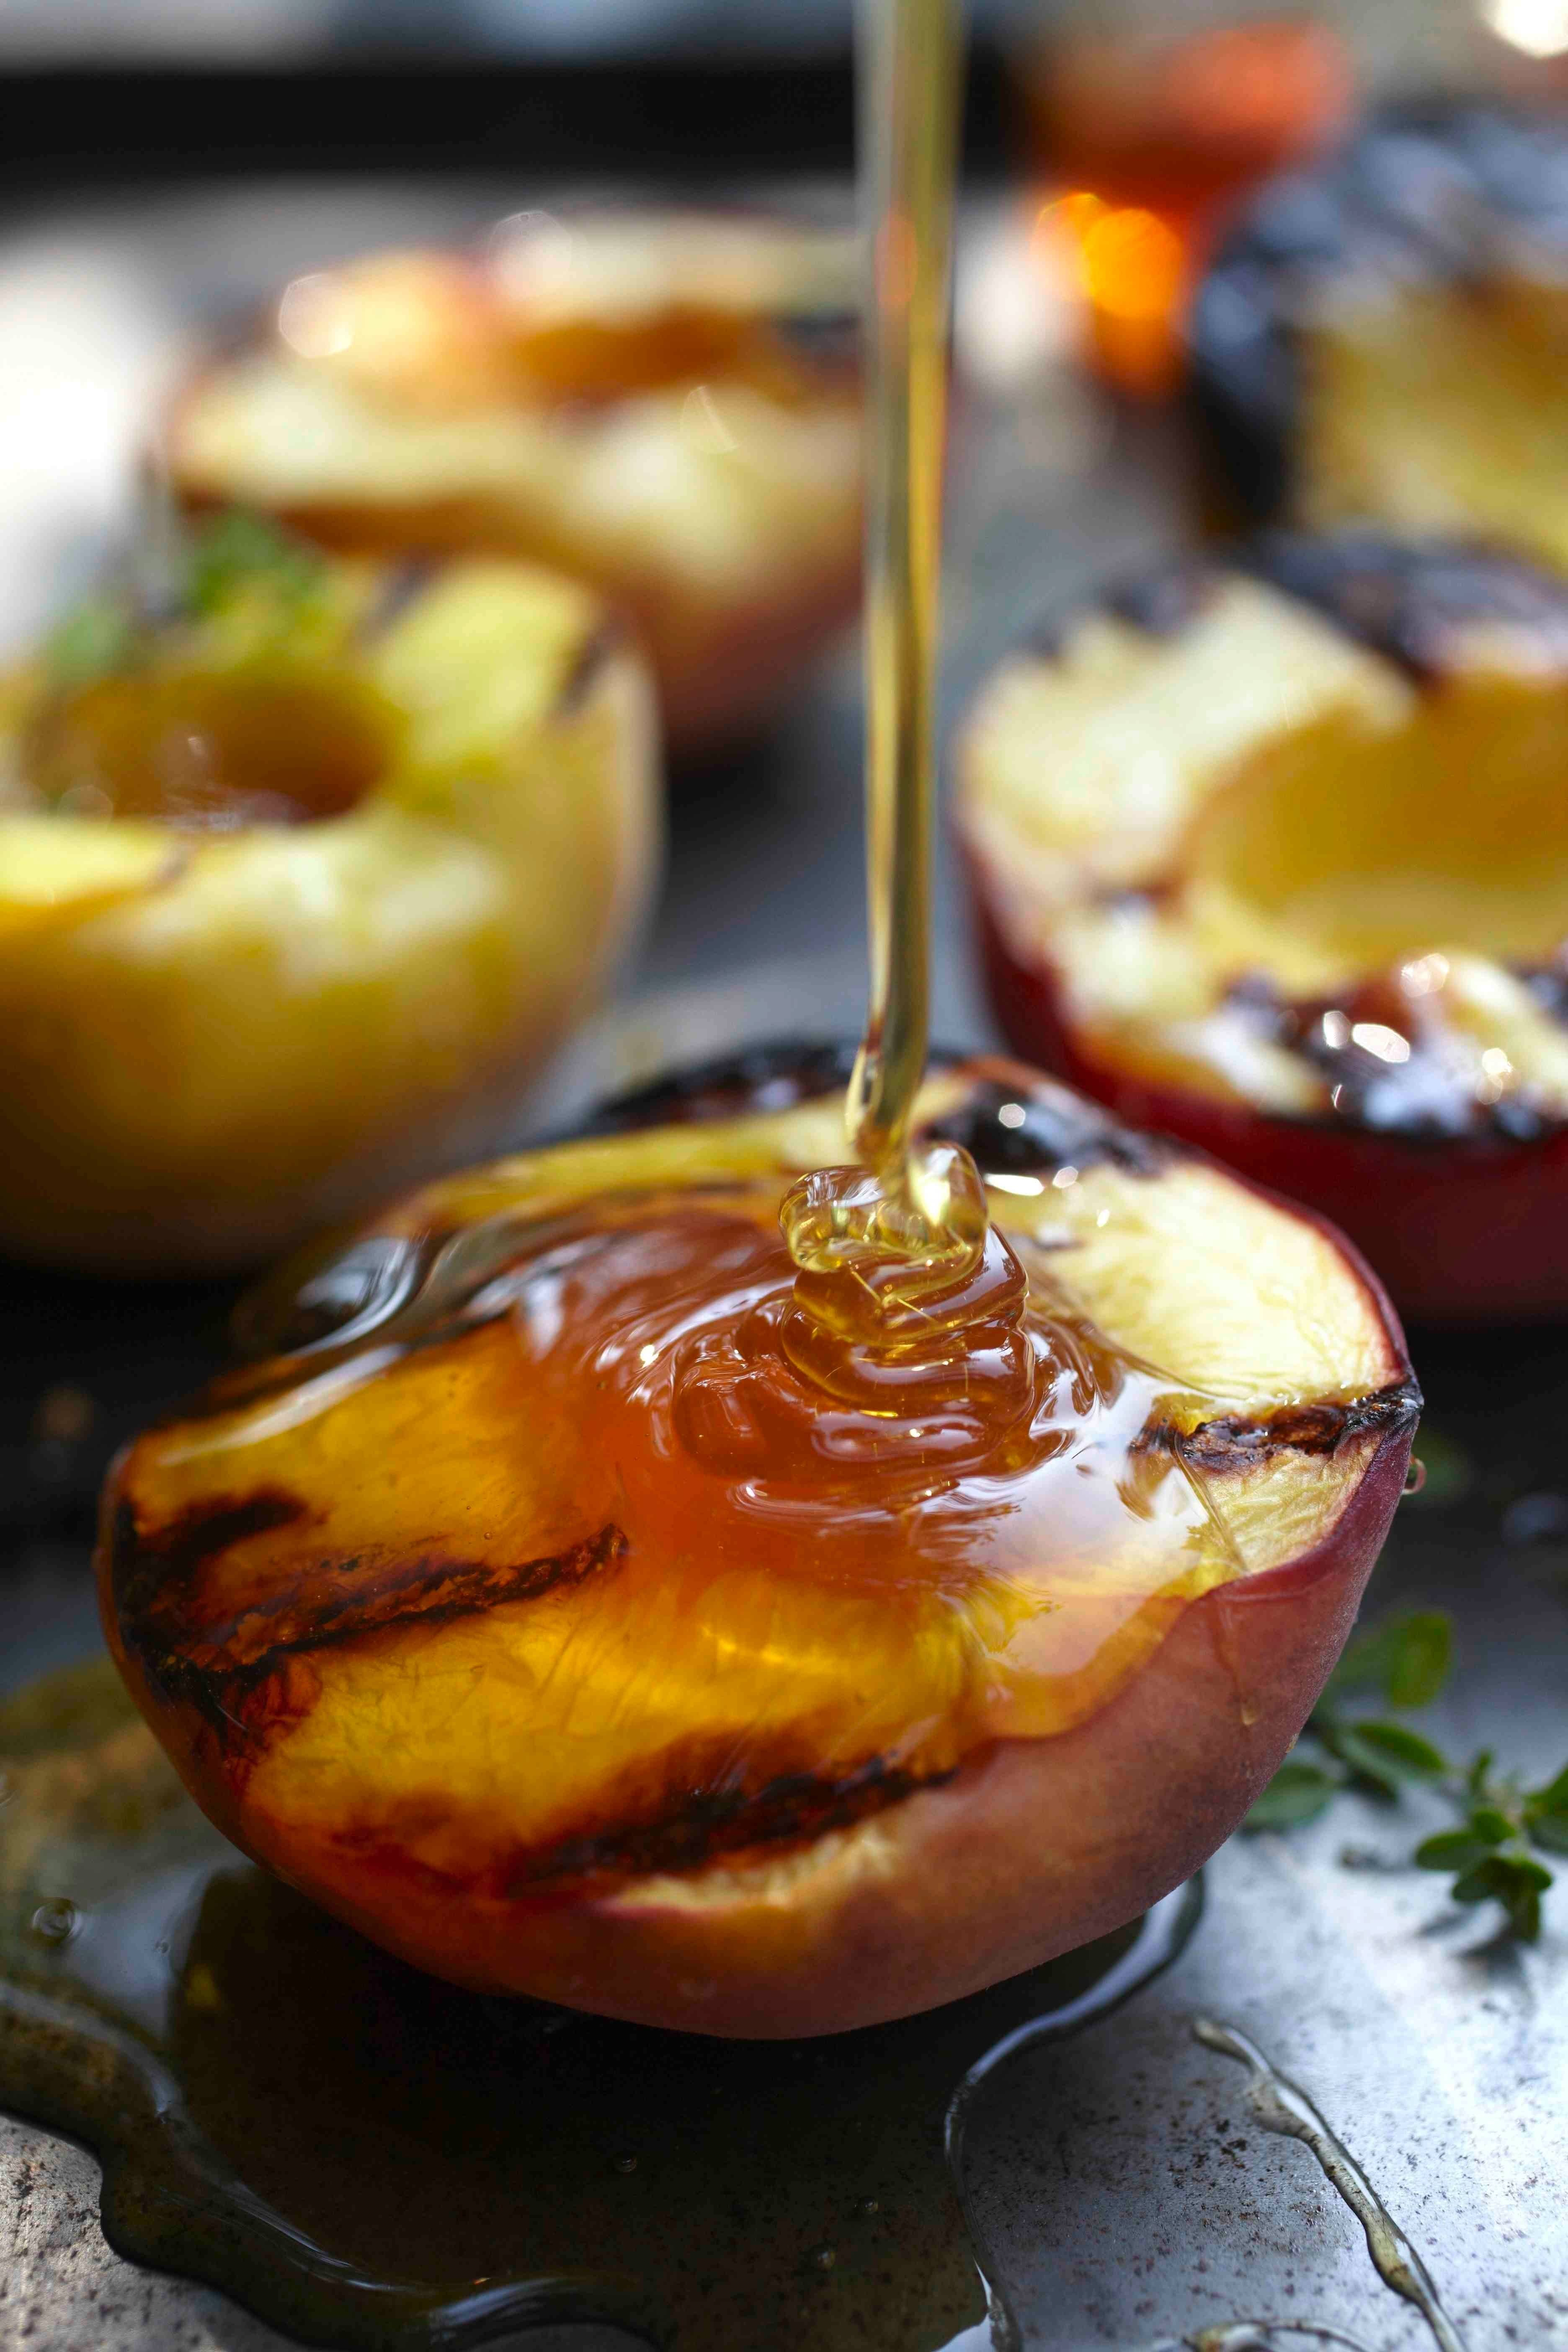 Grilled peaches can be served warm as a salad topping with crumbled Gorgonzola, or serve with a scoop of ice cream for dessert.